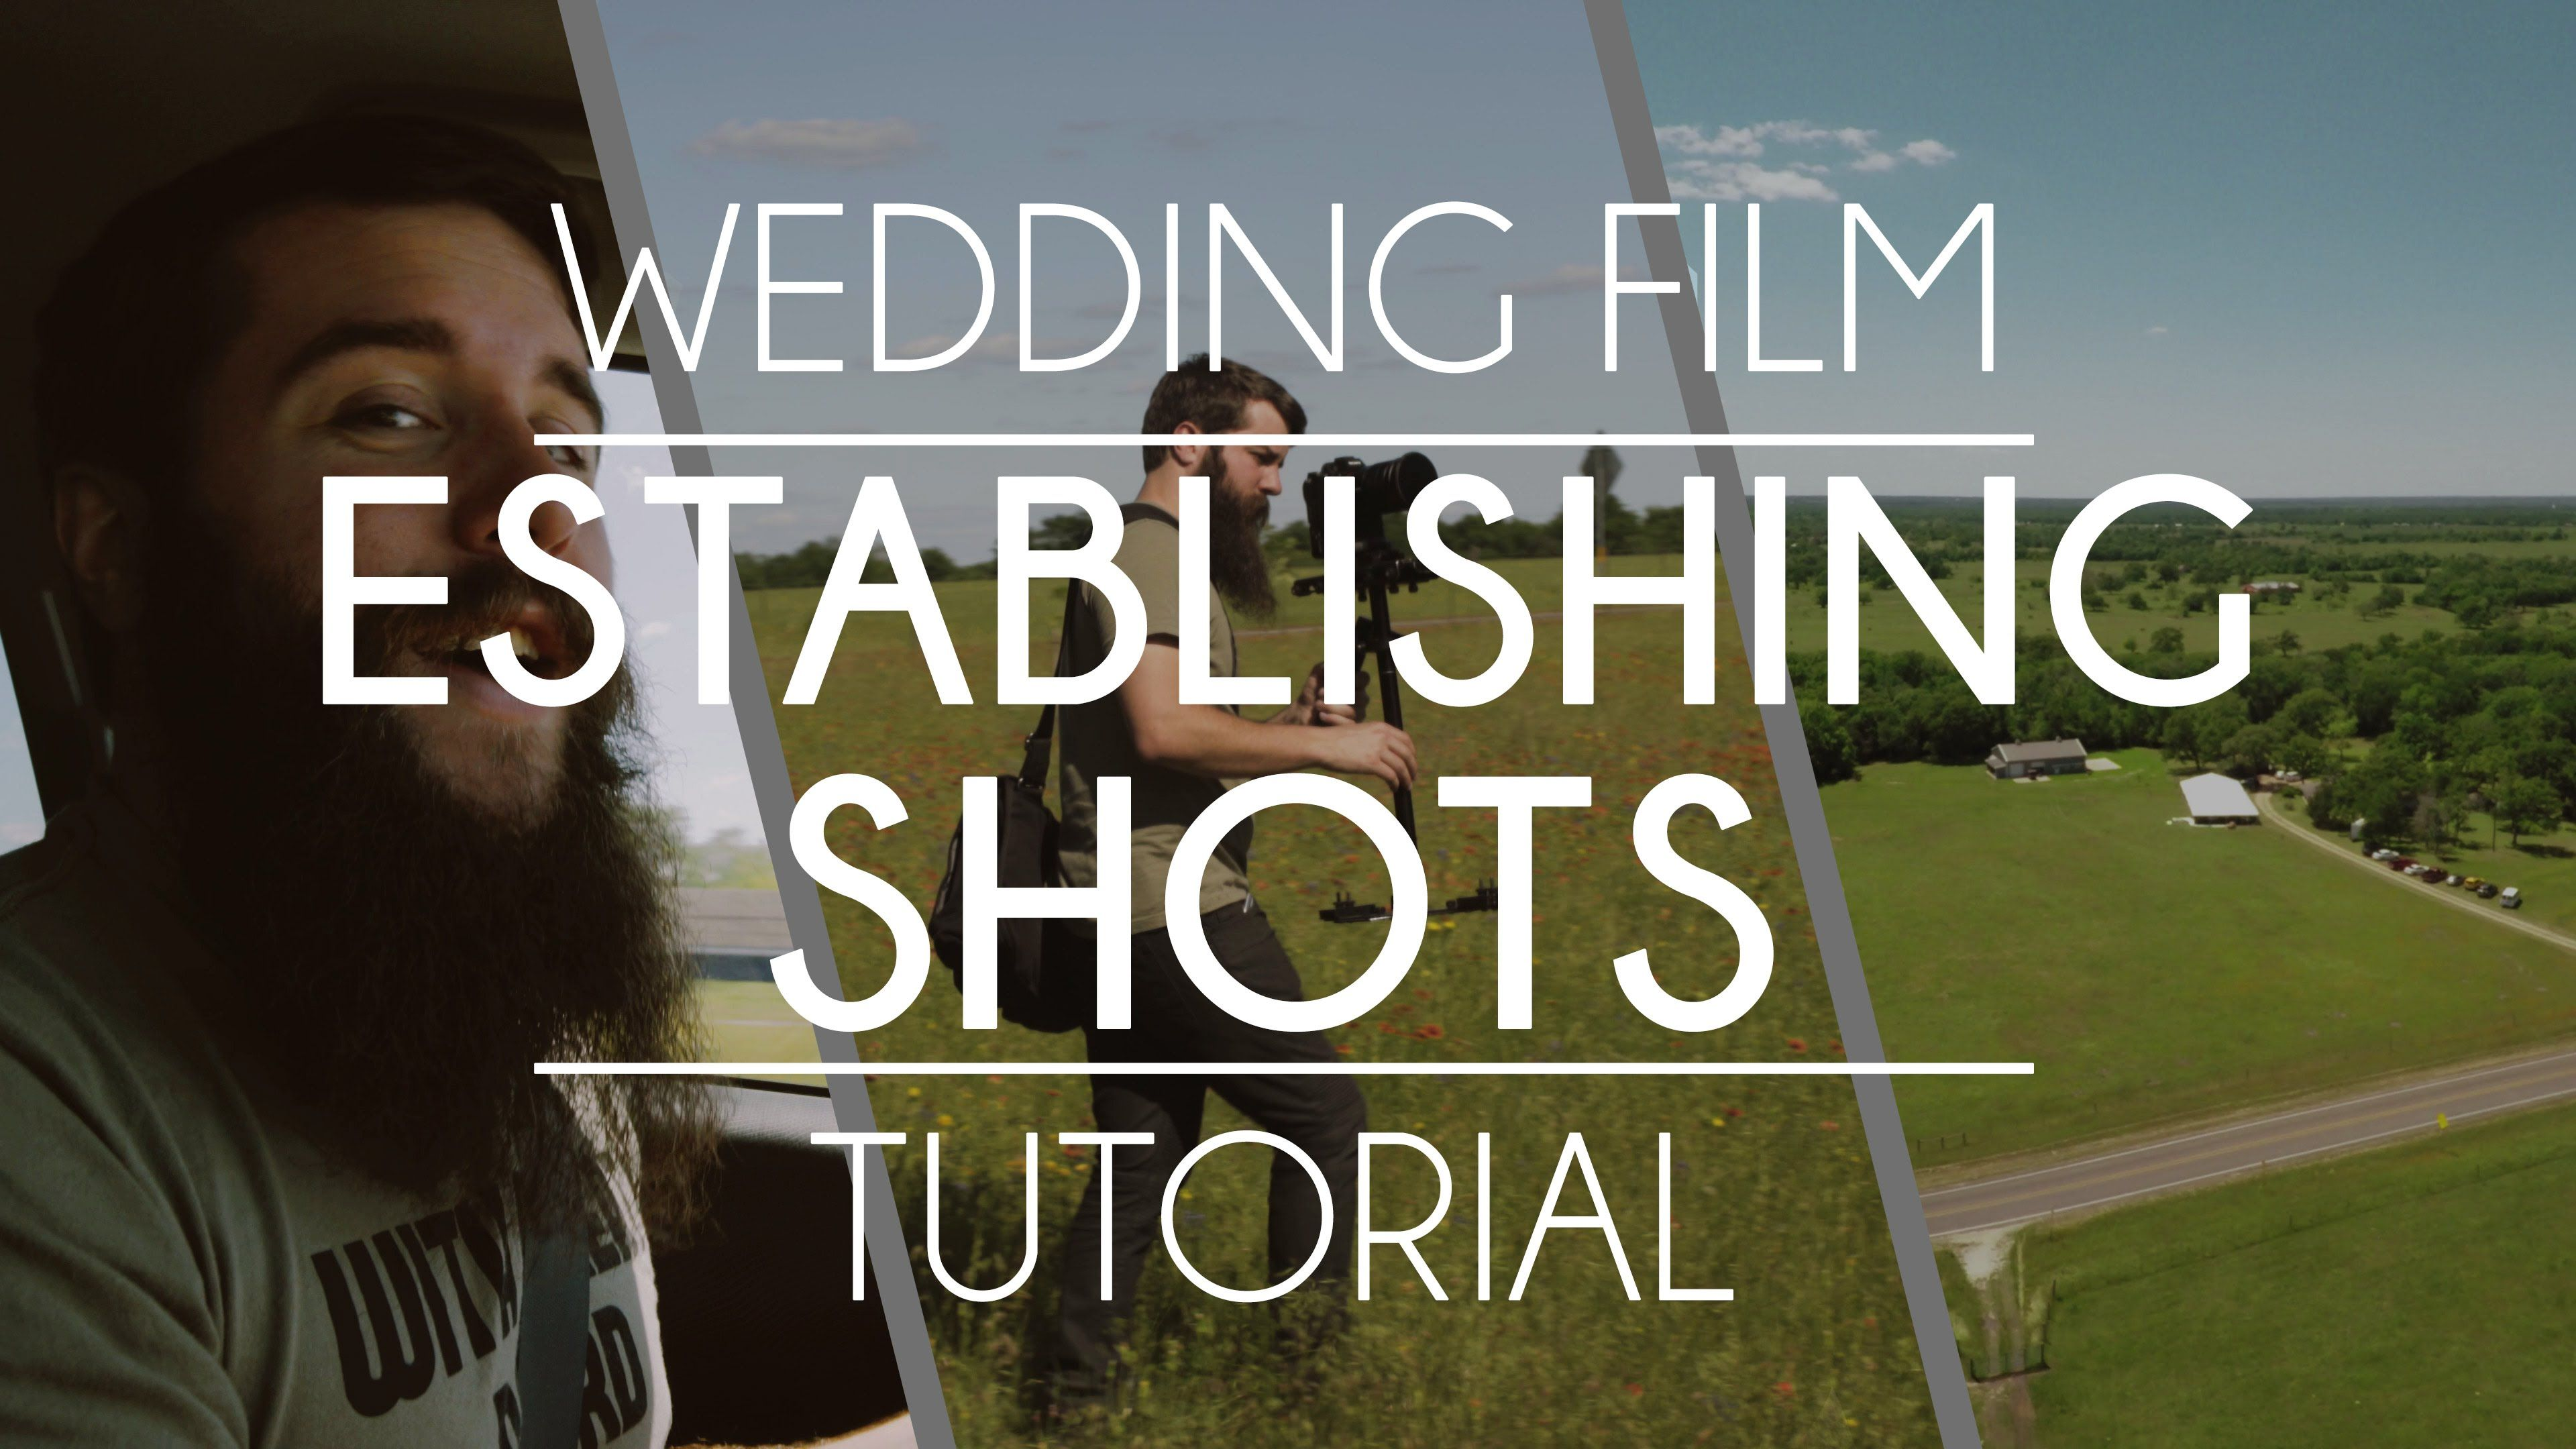 Wedding Film School.Every Film Has An Opening Shot The First Scene That You See When